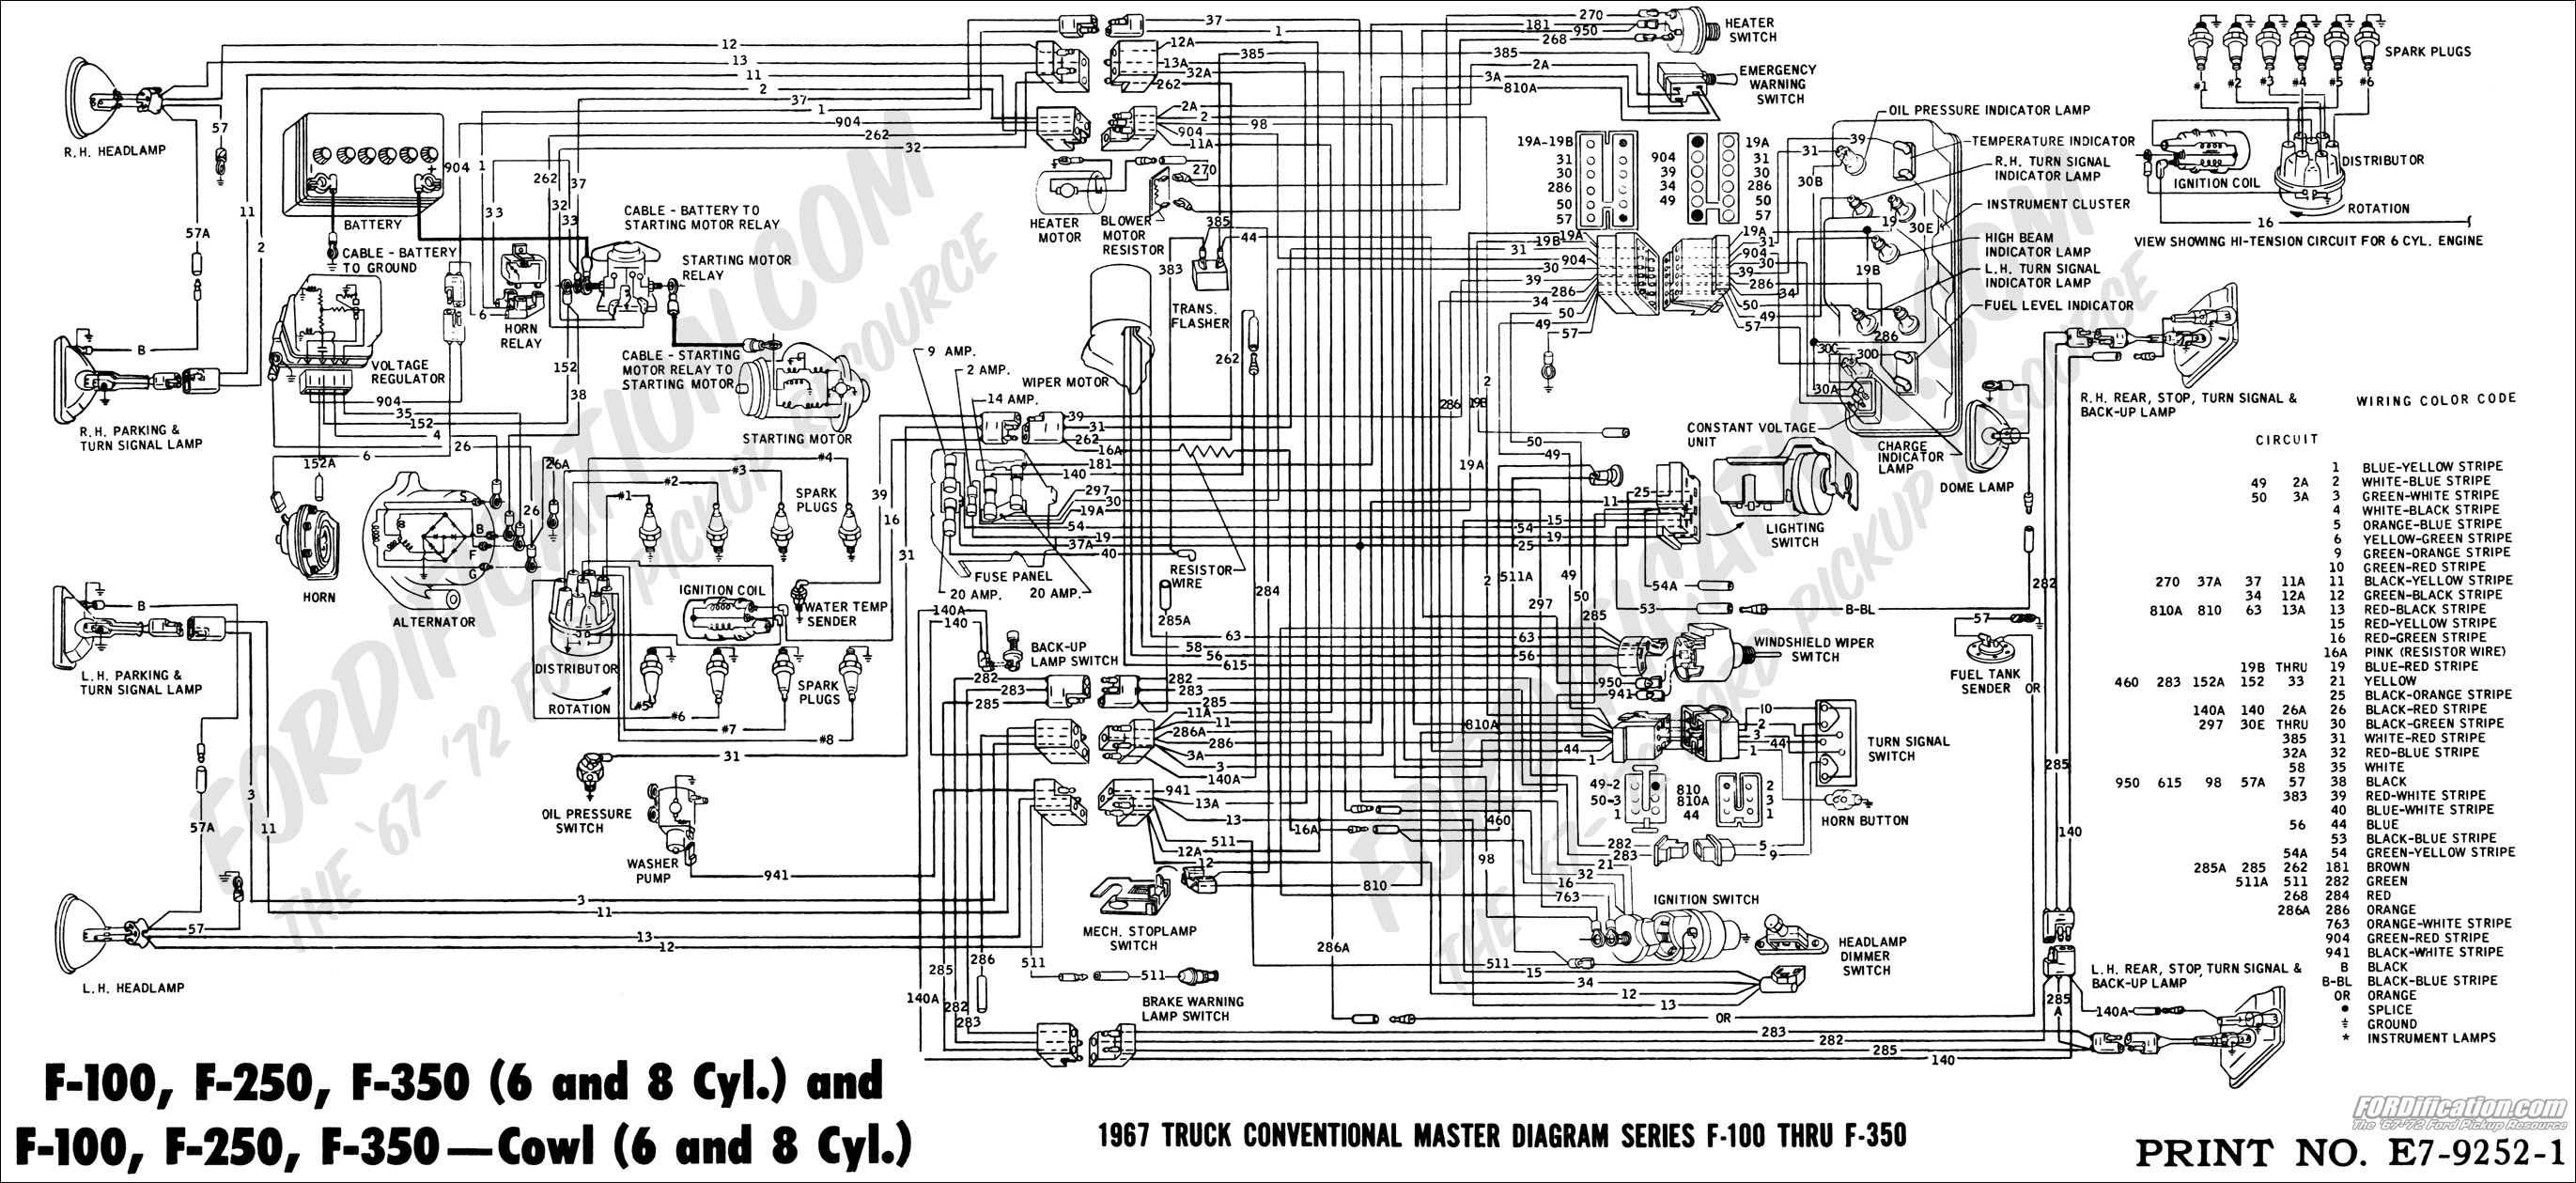 1983 Ford Bronco Wiring Diagram | Best Wiring Liry  Ford Bronco Ll Wiring Diagram on 2003 ford crown victoria wiring diagram, 1987 ford e150 wiring diagram, 2000 ford bronco wiring diagram, 1999 ford ranger ignition wiring diagram, 1987 ford e350 wiring diagram, 1987 ford bronco firing order, 85 ford bronco wiring diagram, 1981 ford bronco wiring diagram, 1992 ford bronco wiring diagram, 1975 ford bronco wiring diagram, 1997 ford f-350 wiring diagram, 2003 ford excursion wiring diagram, 1987 ford f700 wiring diagram, 86 ford bronco 2 wiring diagram, 1987 ford f600 wiring diagram, 1987 ford f-350 wiring diagram, 1987 ford ranger fuel system, 1997 ford crown victoria wiring diagram, ford bronco aftermarket wiring diagram, 1987 ford f150 fuel system diagram,